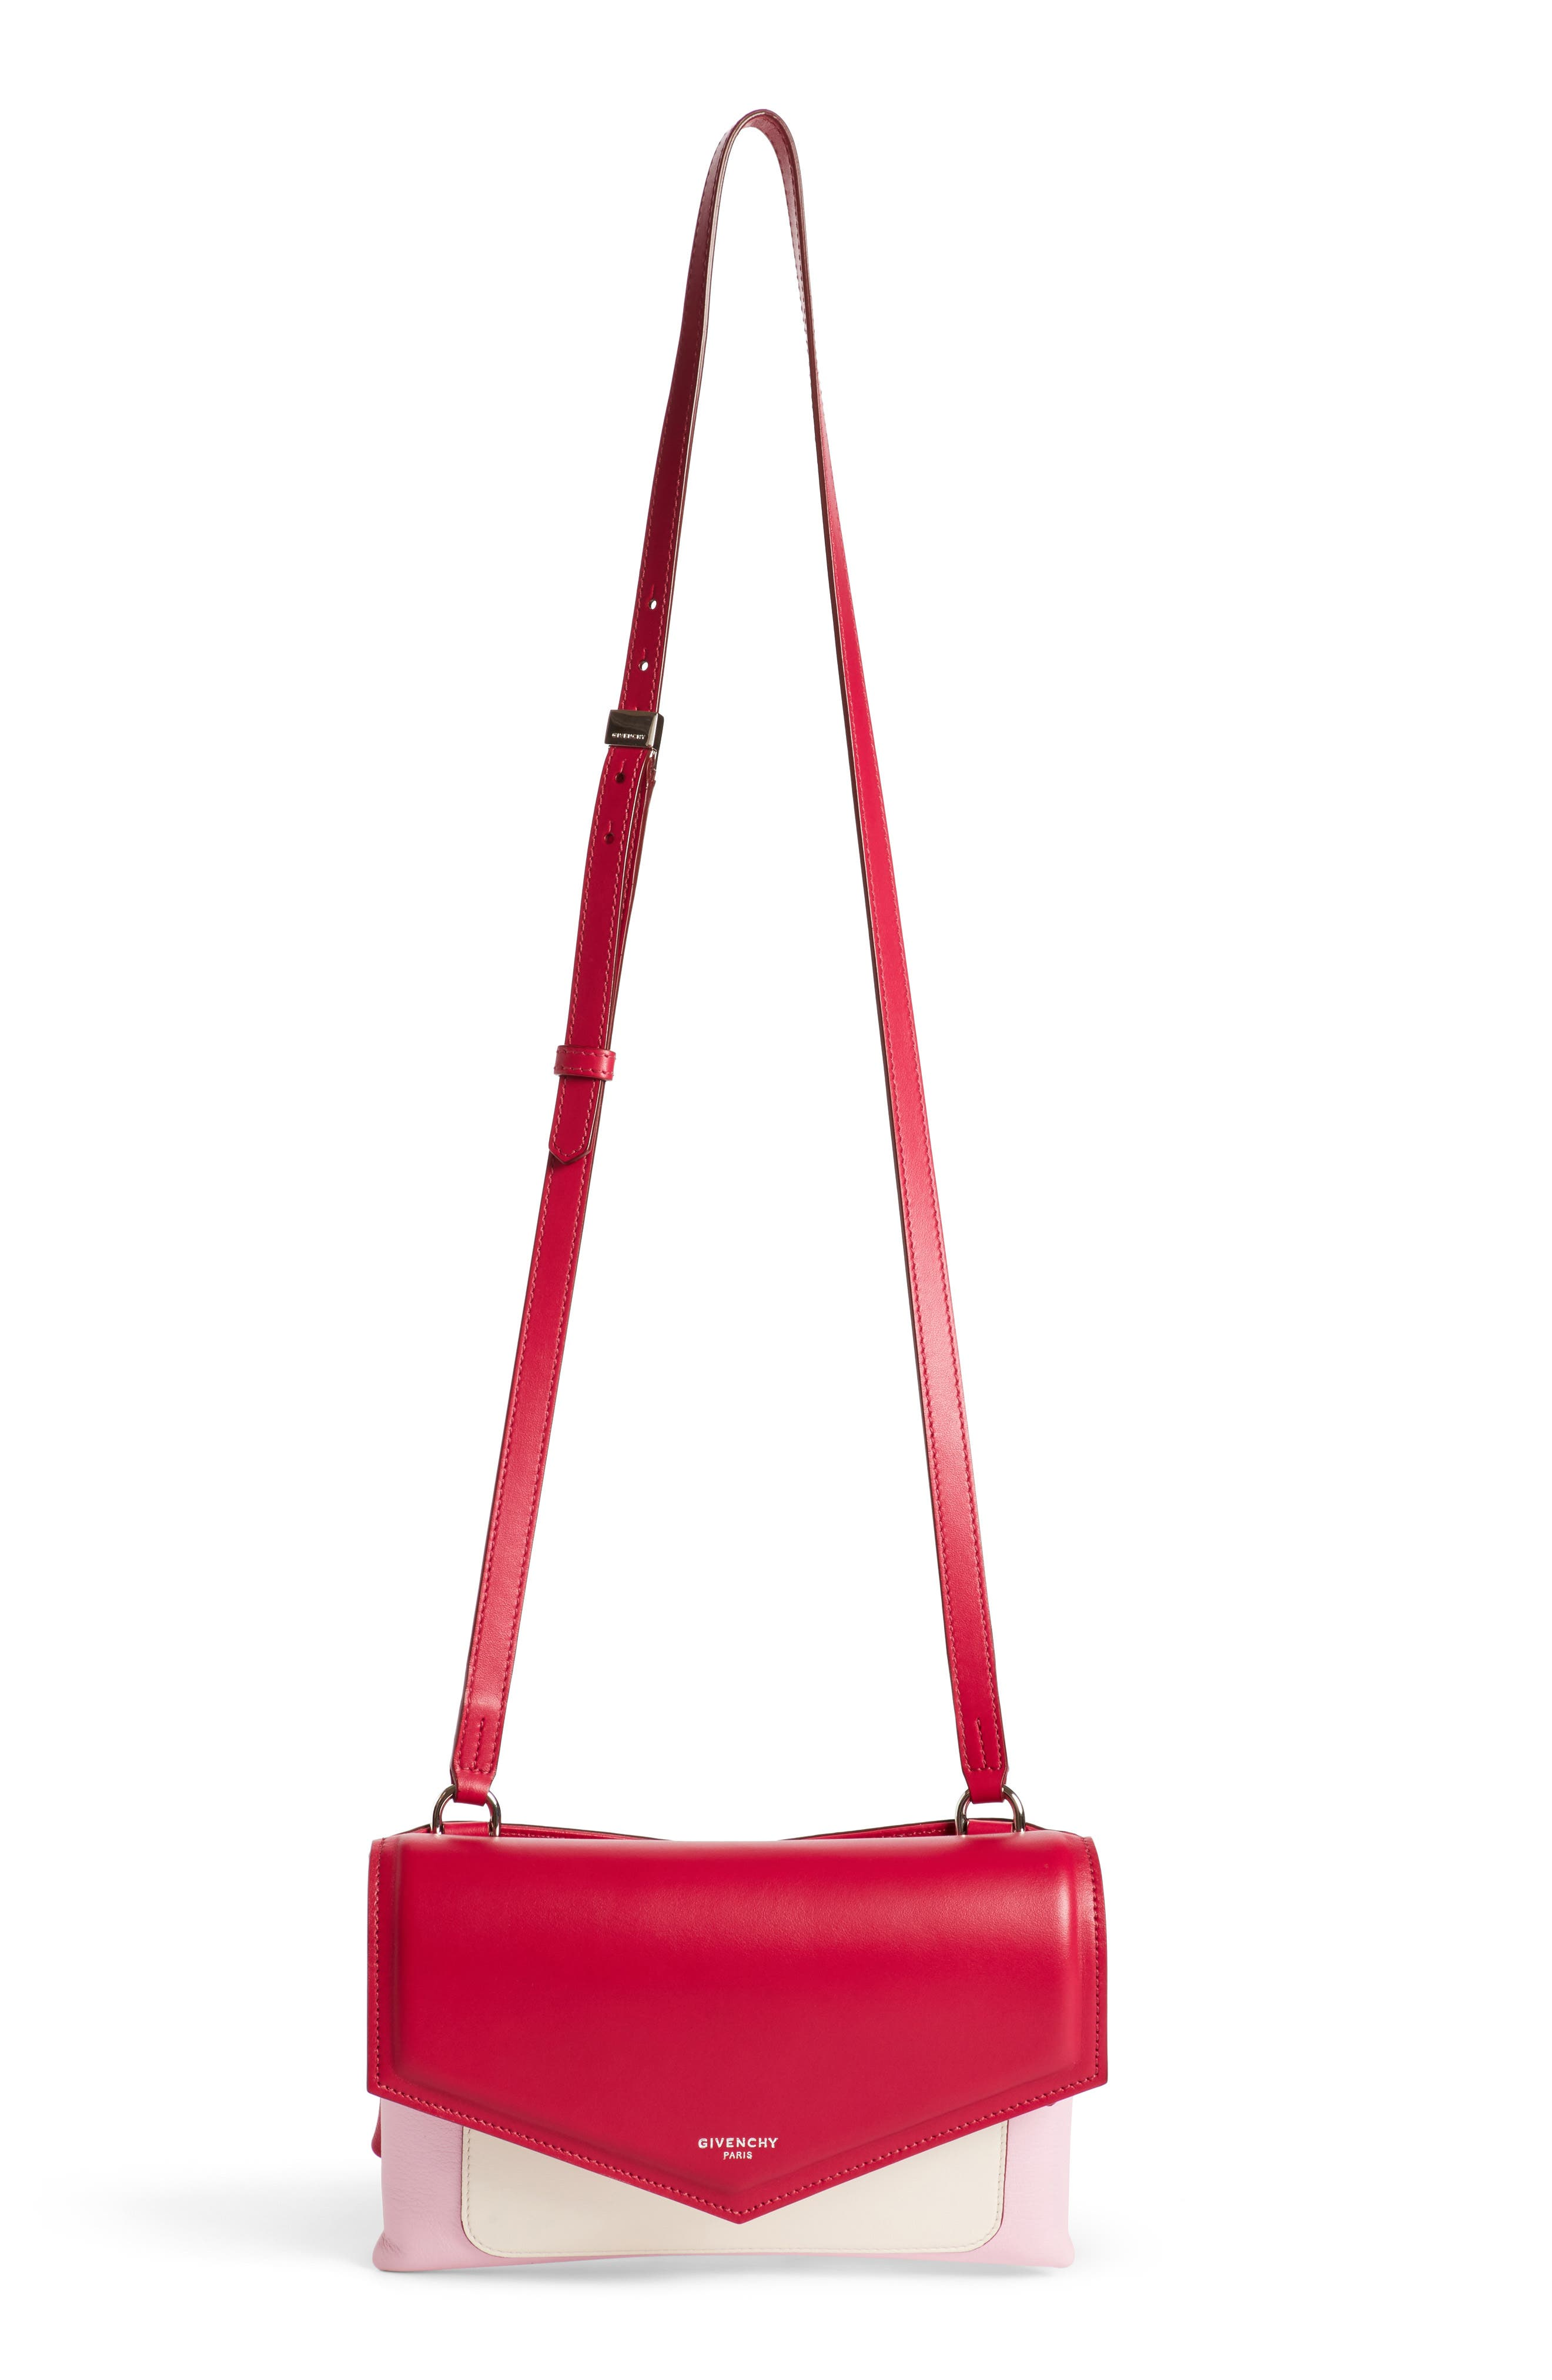 Alternate Image 1 Selected - Givenchy Duetto Tricolor Leather Flap Crossbody Bag